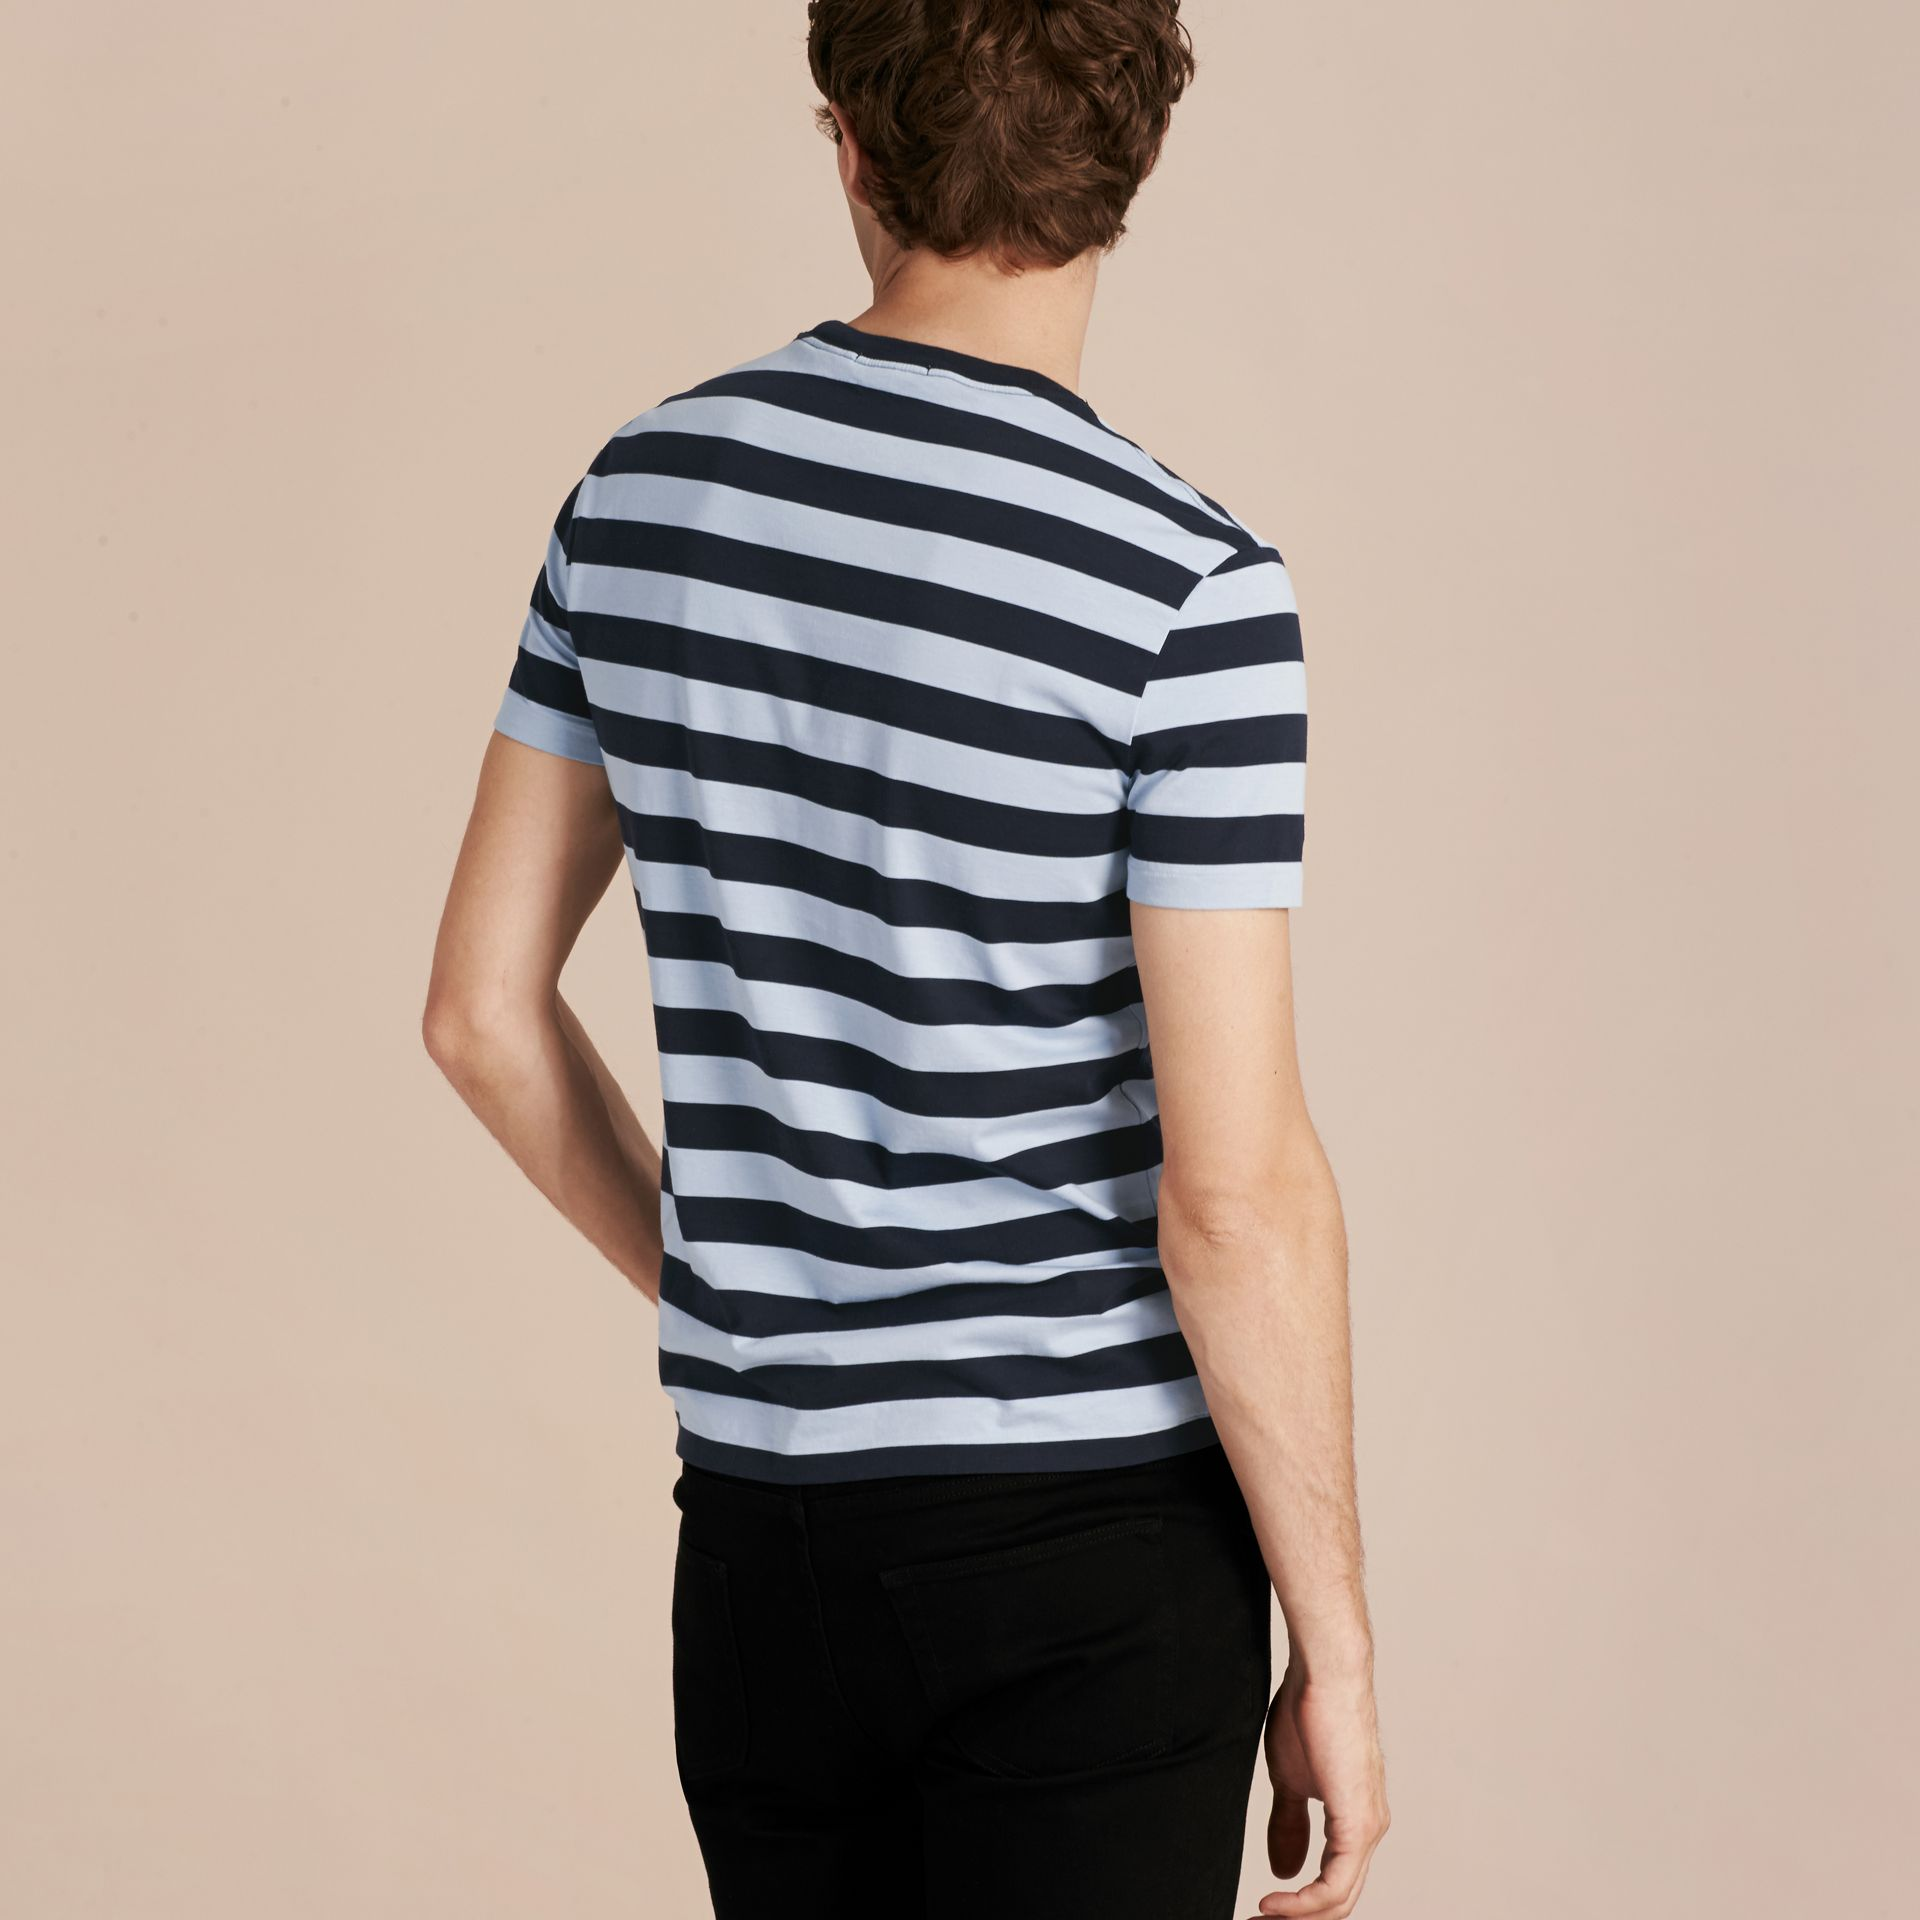 Navy Striped Cotton T-Shirt Navy - gallery image 2